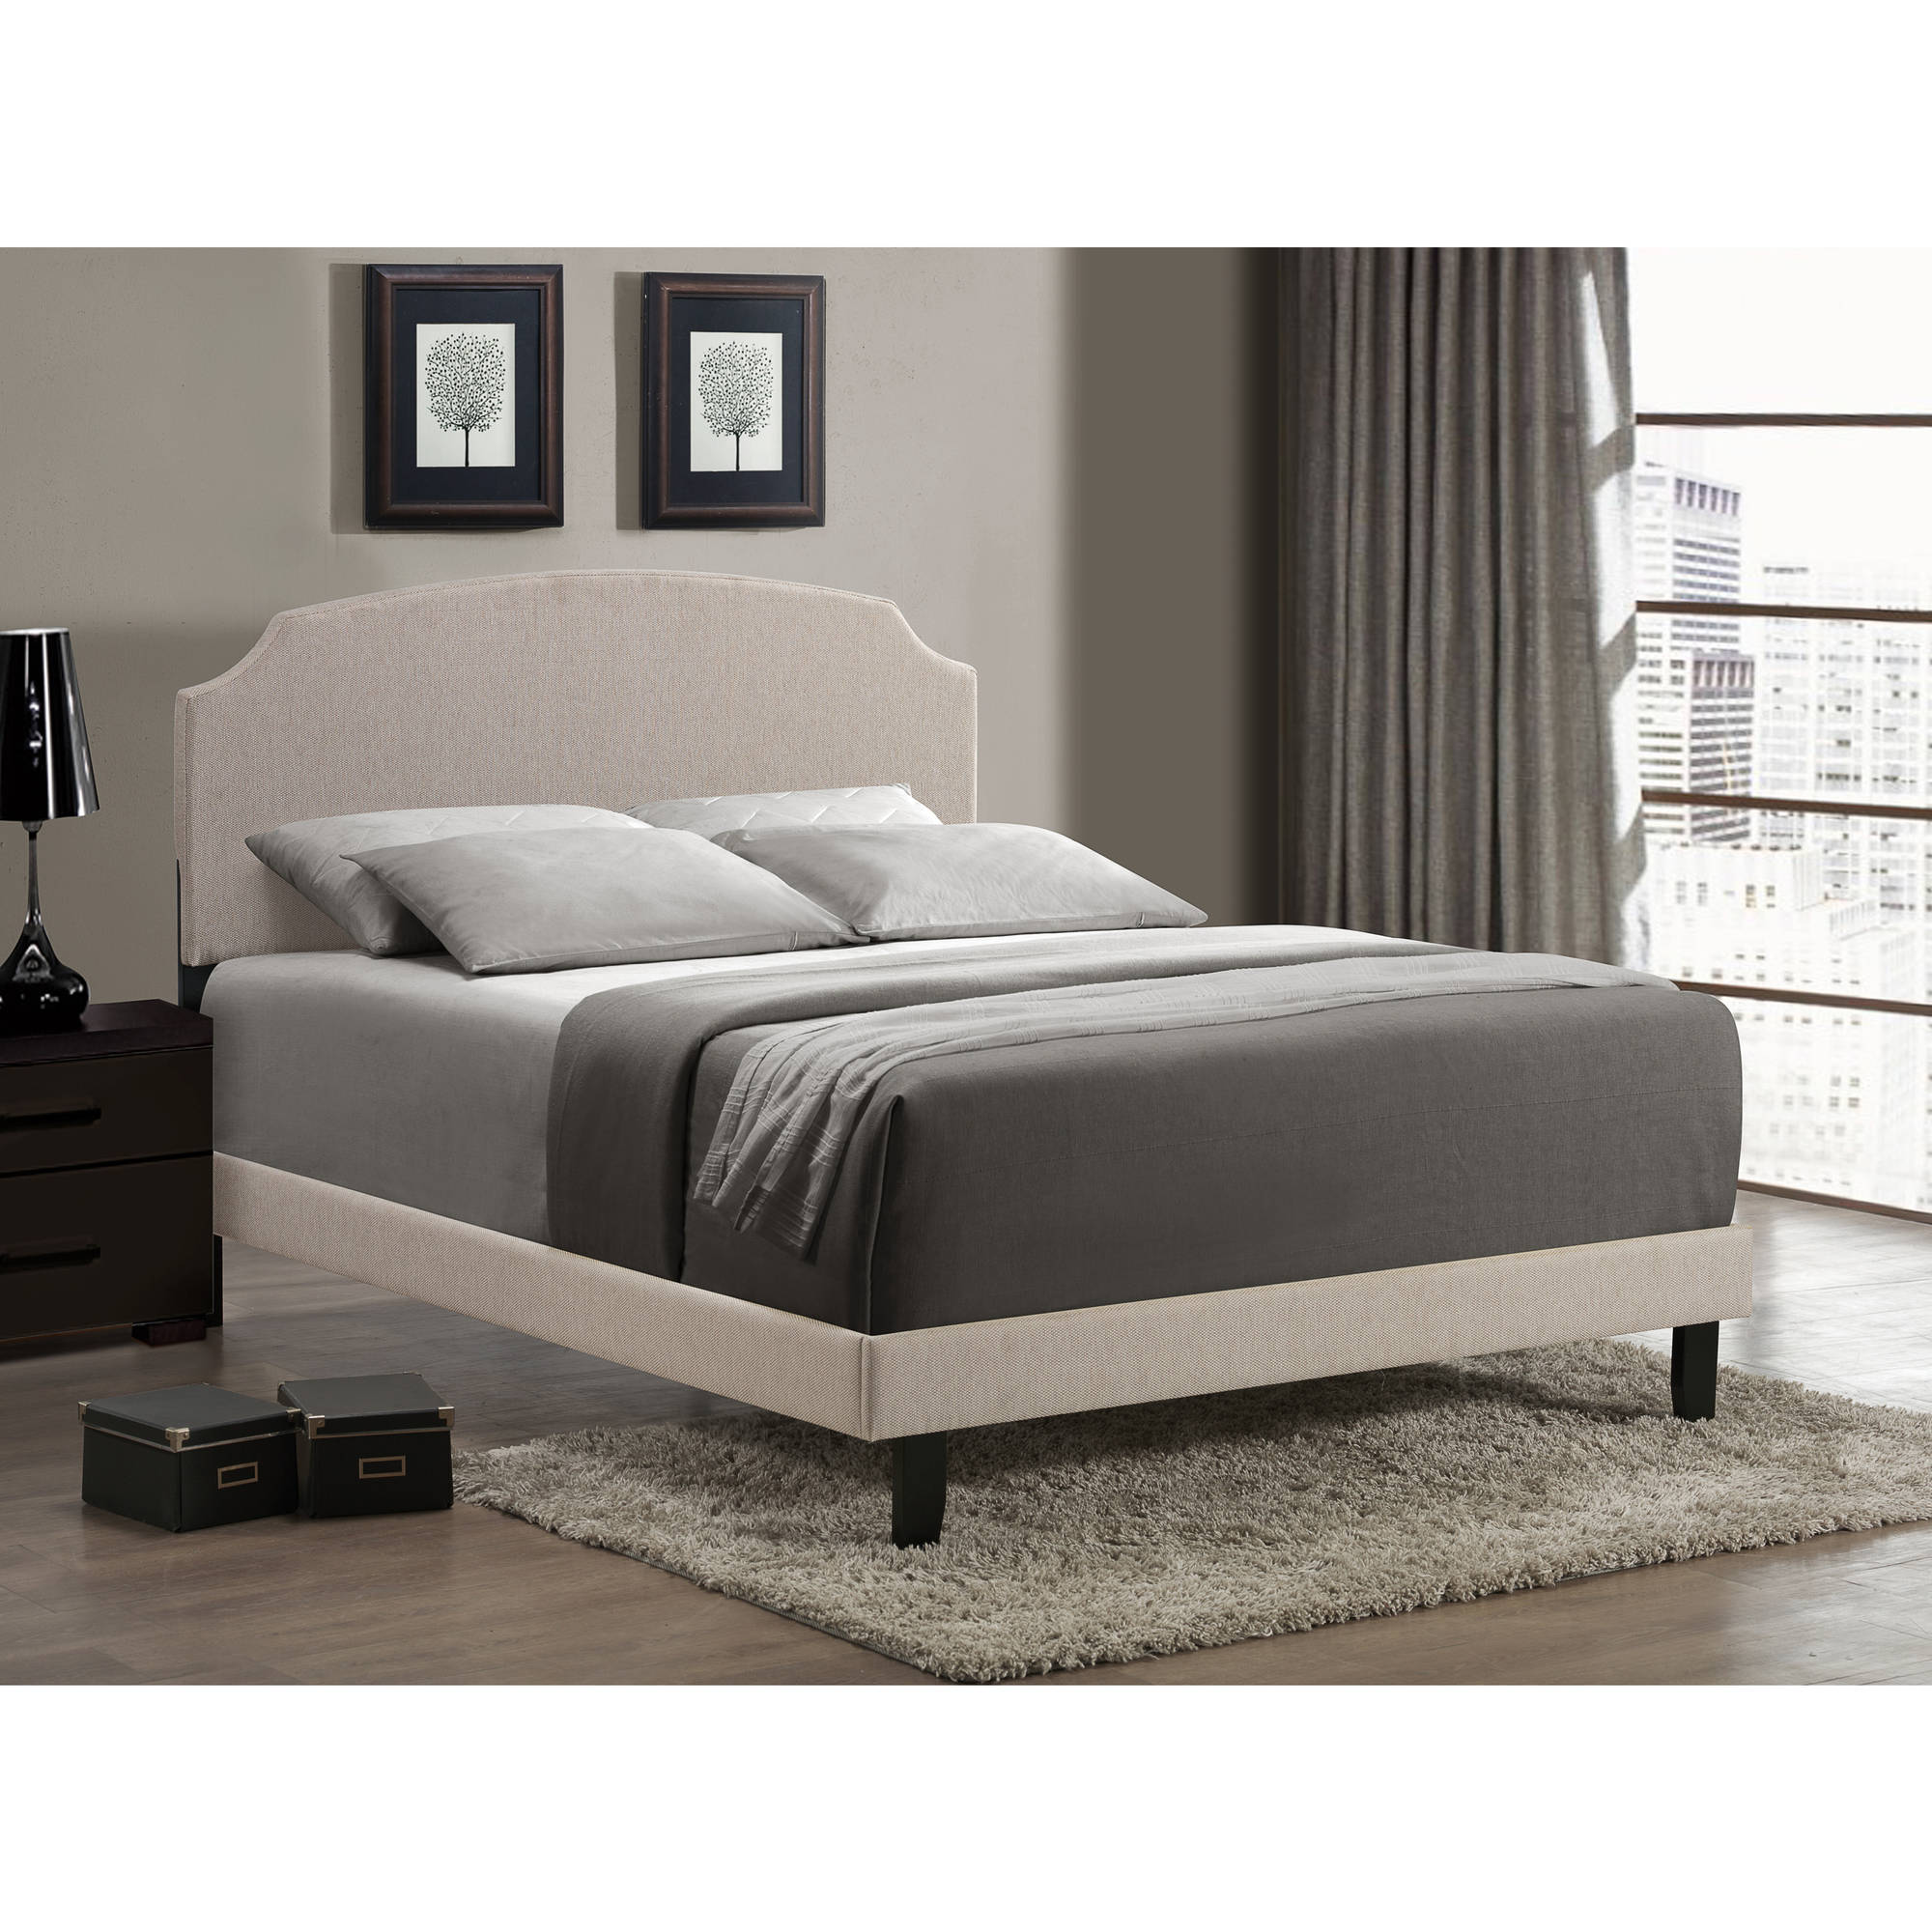 Hillsdale Furniture Lawler Bed, Cream, Multiple Sizes